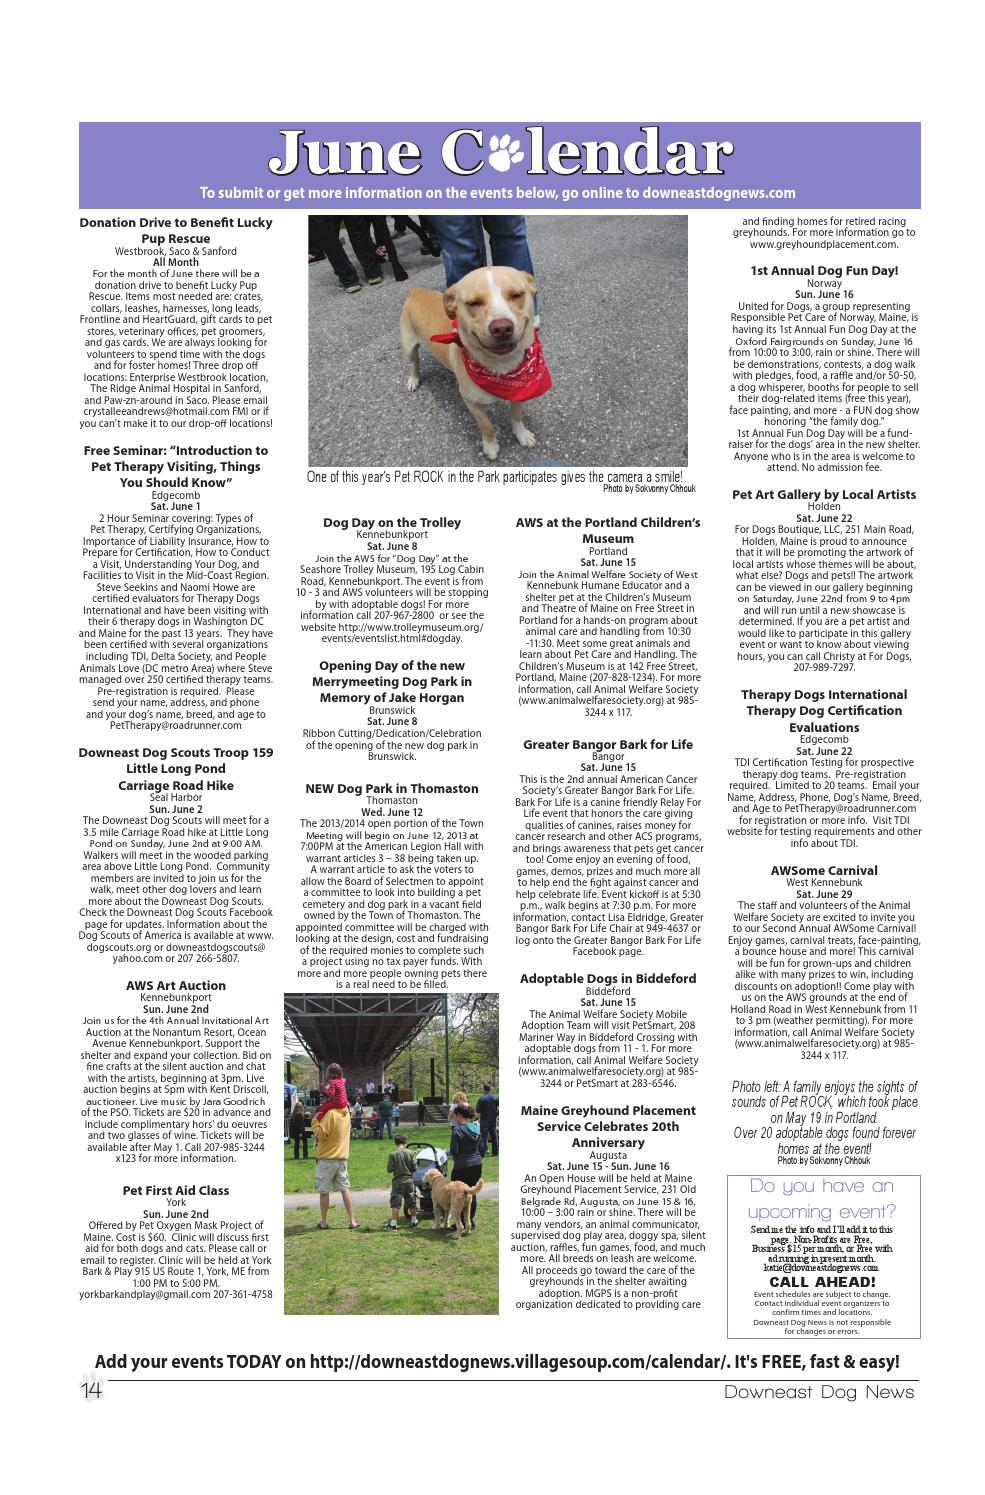 Downeast Dog News June 2013 by Downeast Dog News - issuu